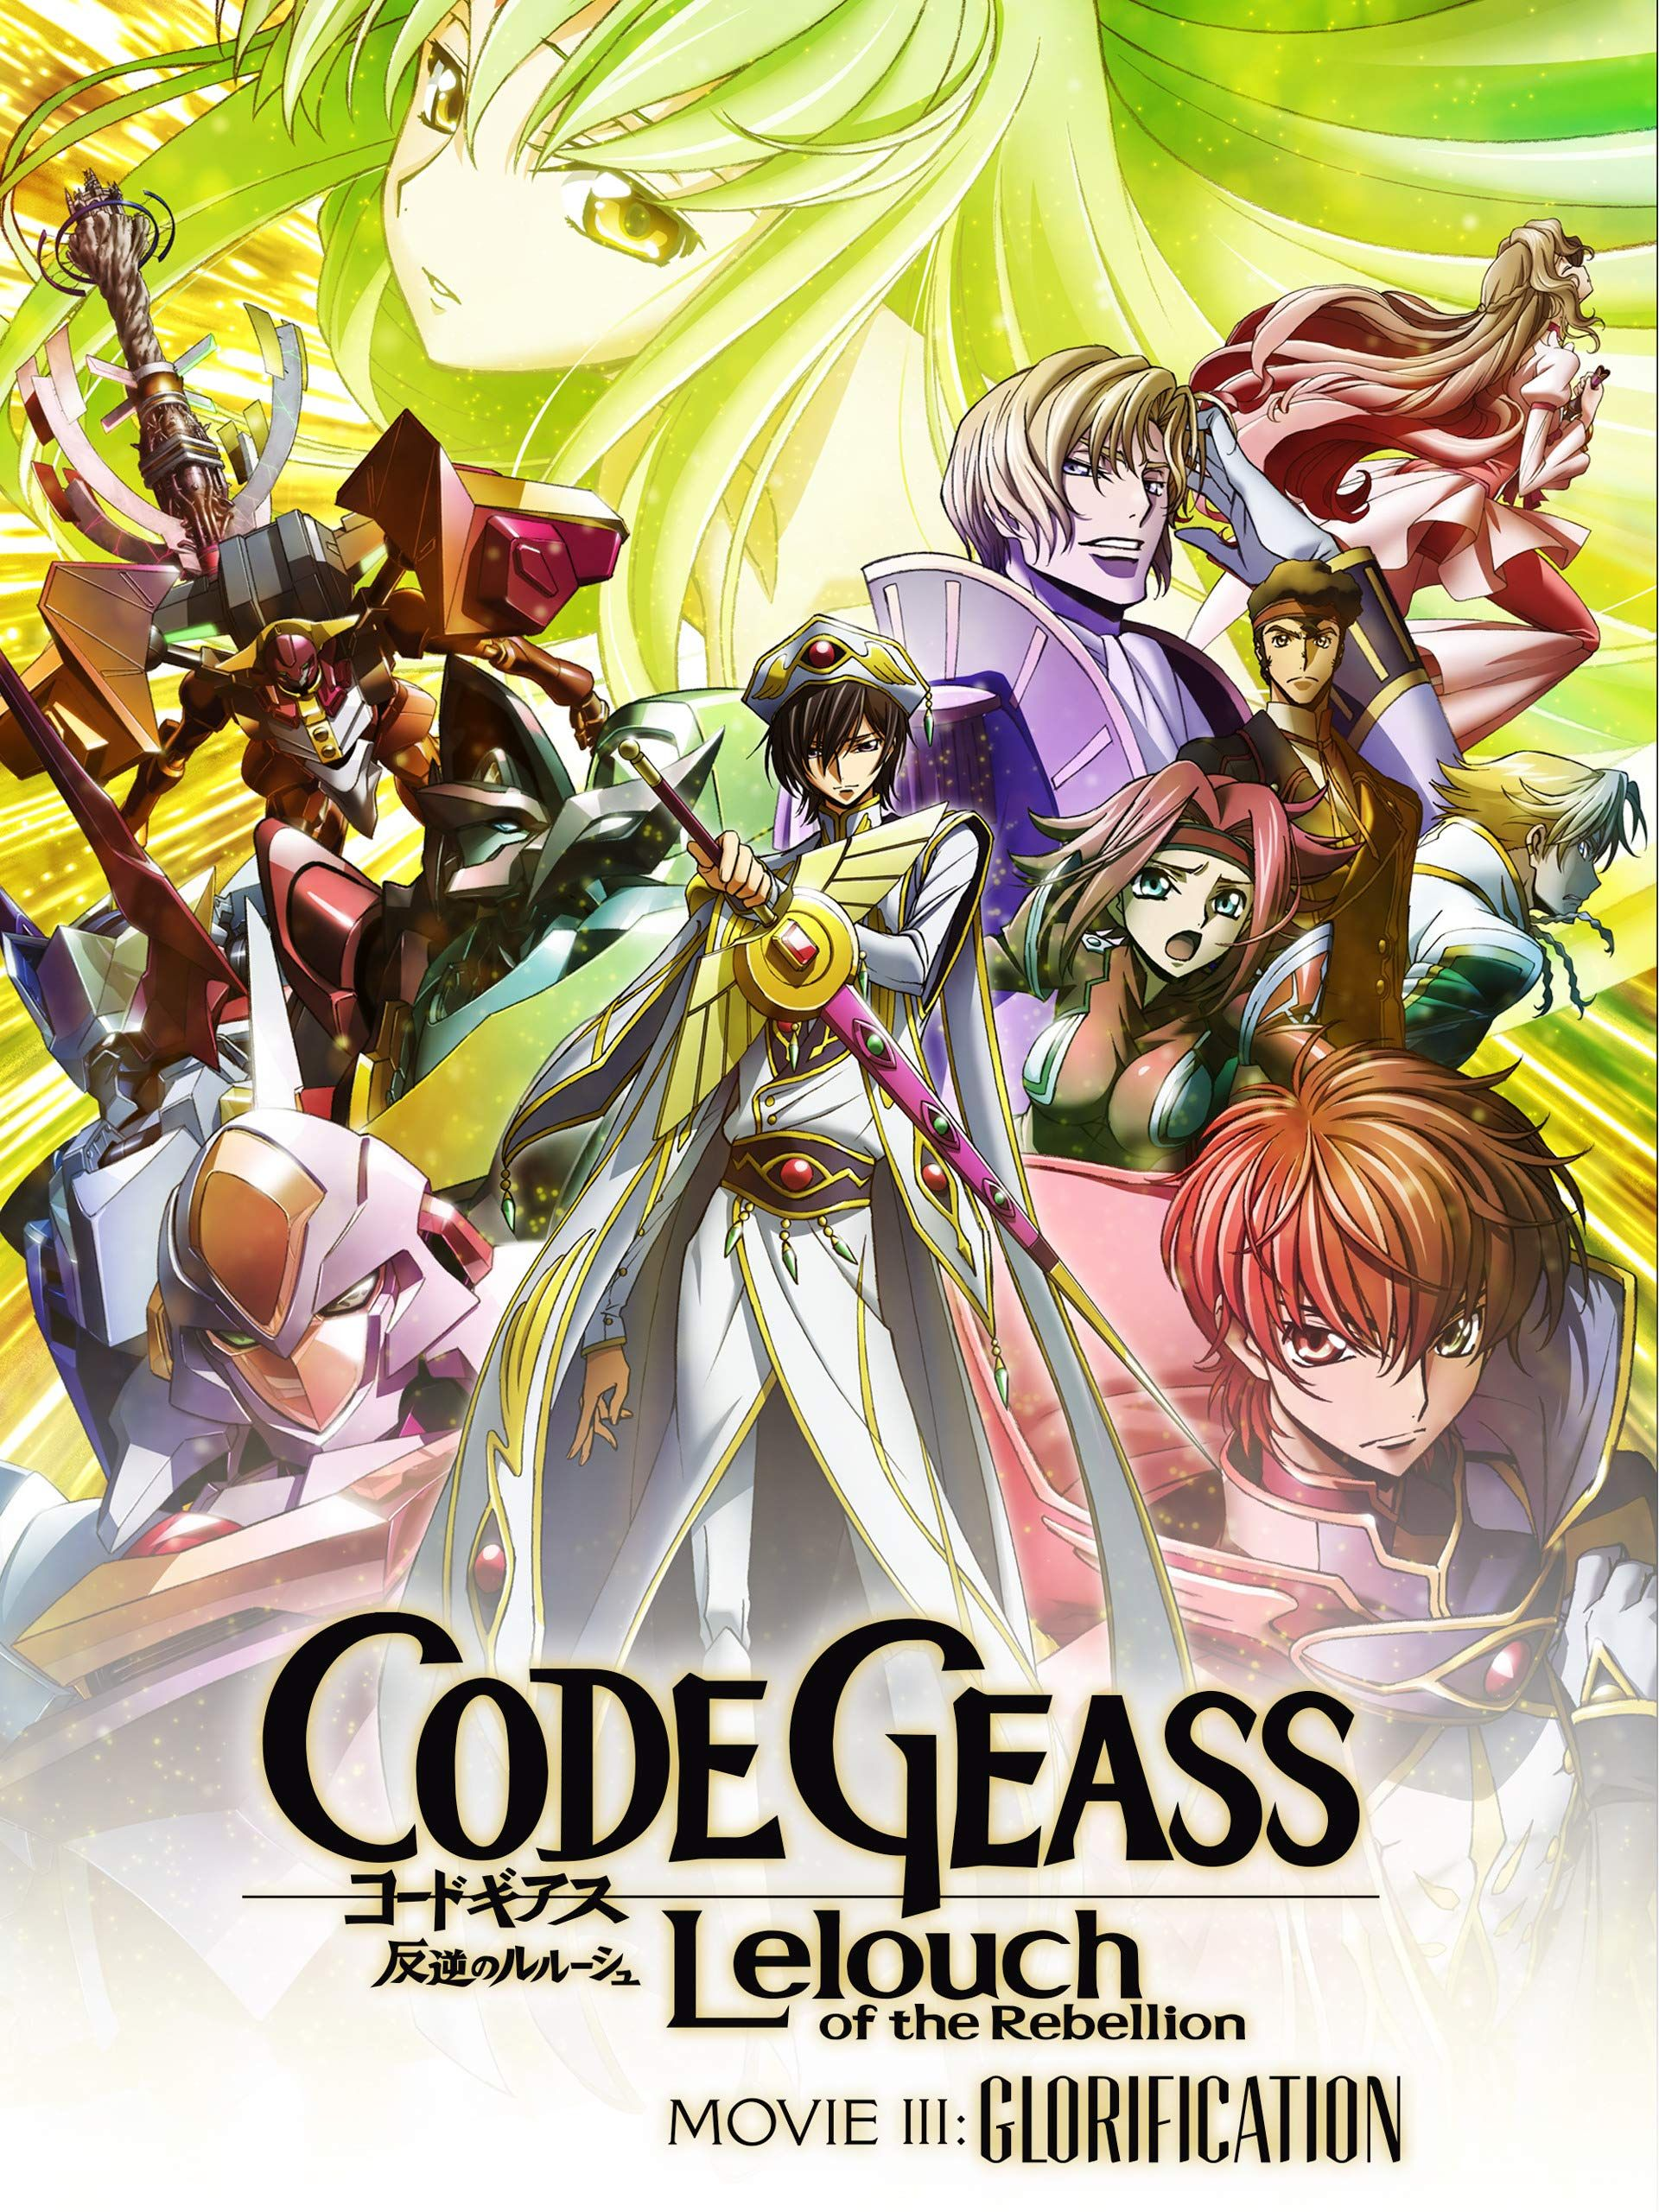 Anime Movie Review Code Geass Lelouch of the Rebellion